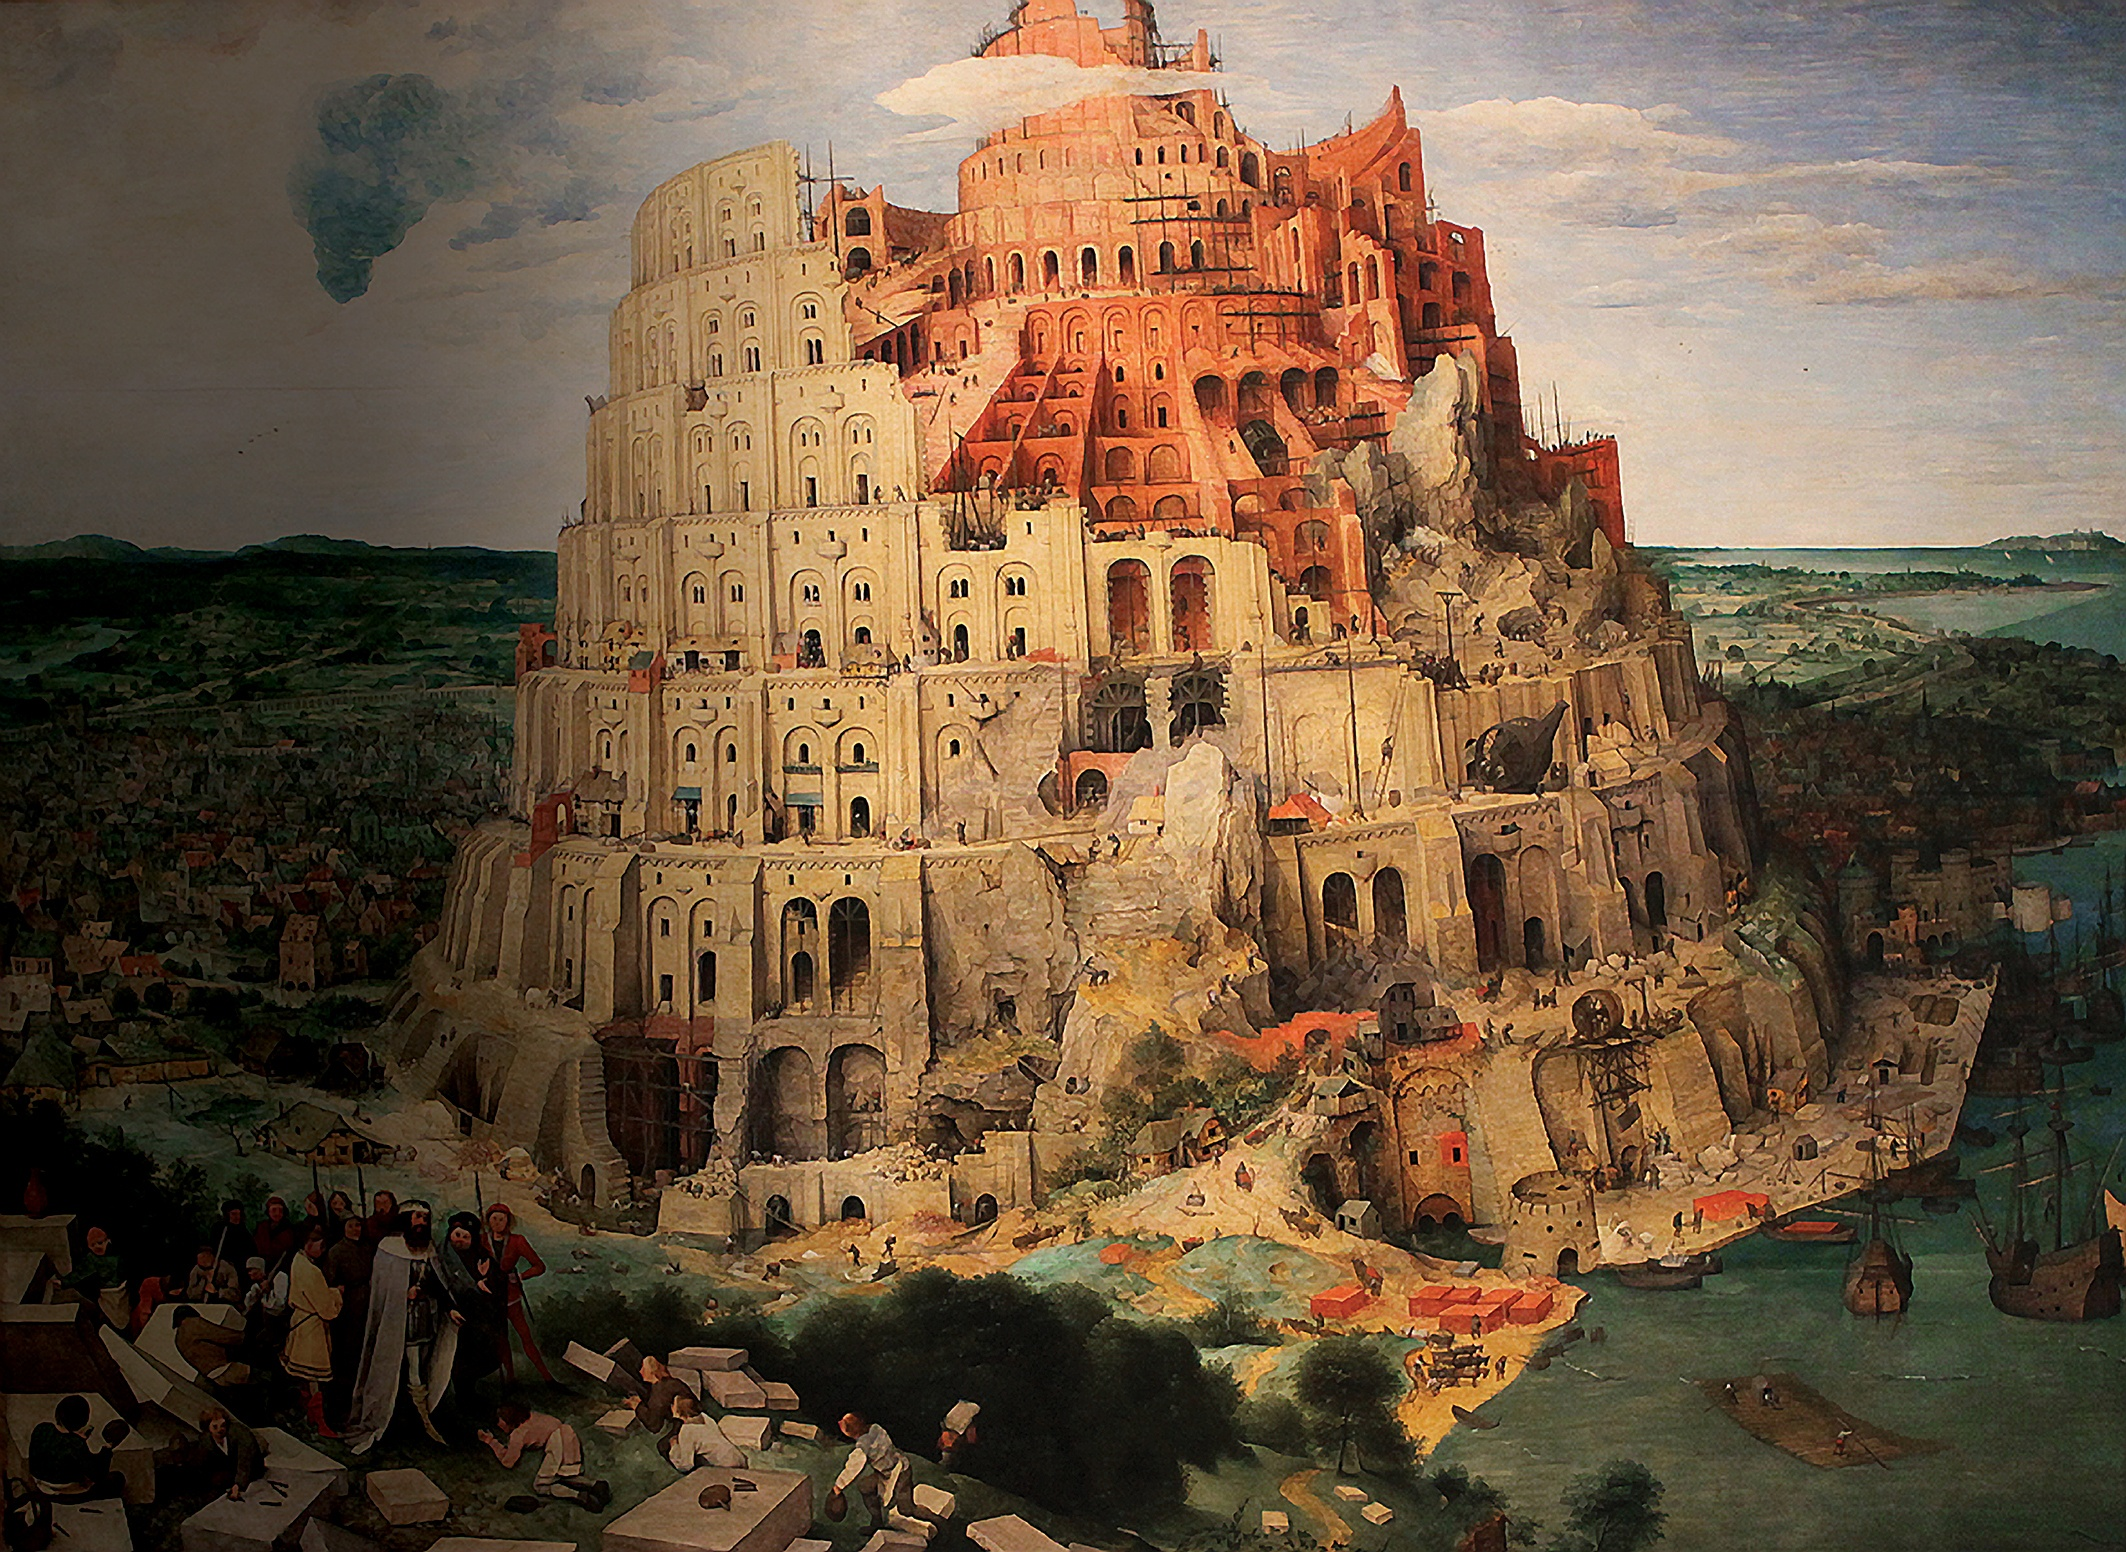 Tower of Babel by artist Pieter Bruegel the Elder 1563. Exiled in Babylon, after he had survived the lions' den, Daniel's vision of successive earthly empires spanning history, including the date of Messiah's birth, led to a tradition of interpreting world history in the light of the Bible. Daniel started his own 'school' of study in this field and his successors were wise men called the Magi, the prophetic king-makers of the Middle East. Hence Herod's terror when they arrived in Jerusalem, a small army on horseback (not camels and many more than three!) ready to welcome the King of the Jews